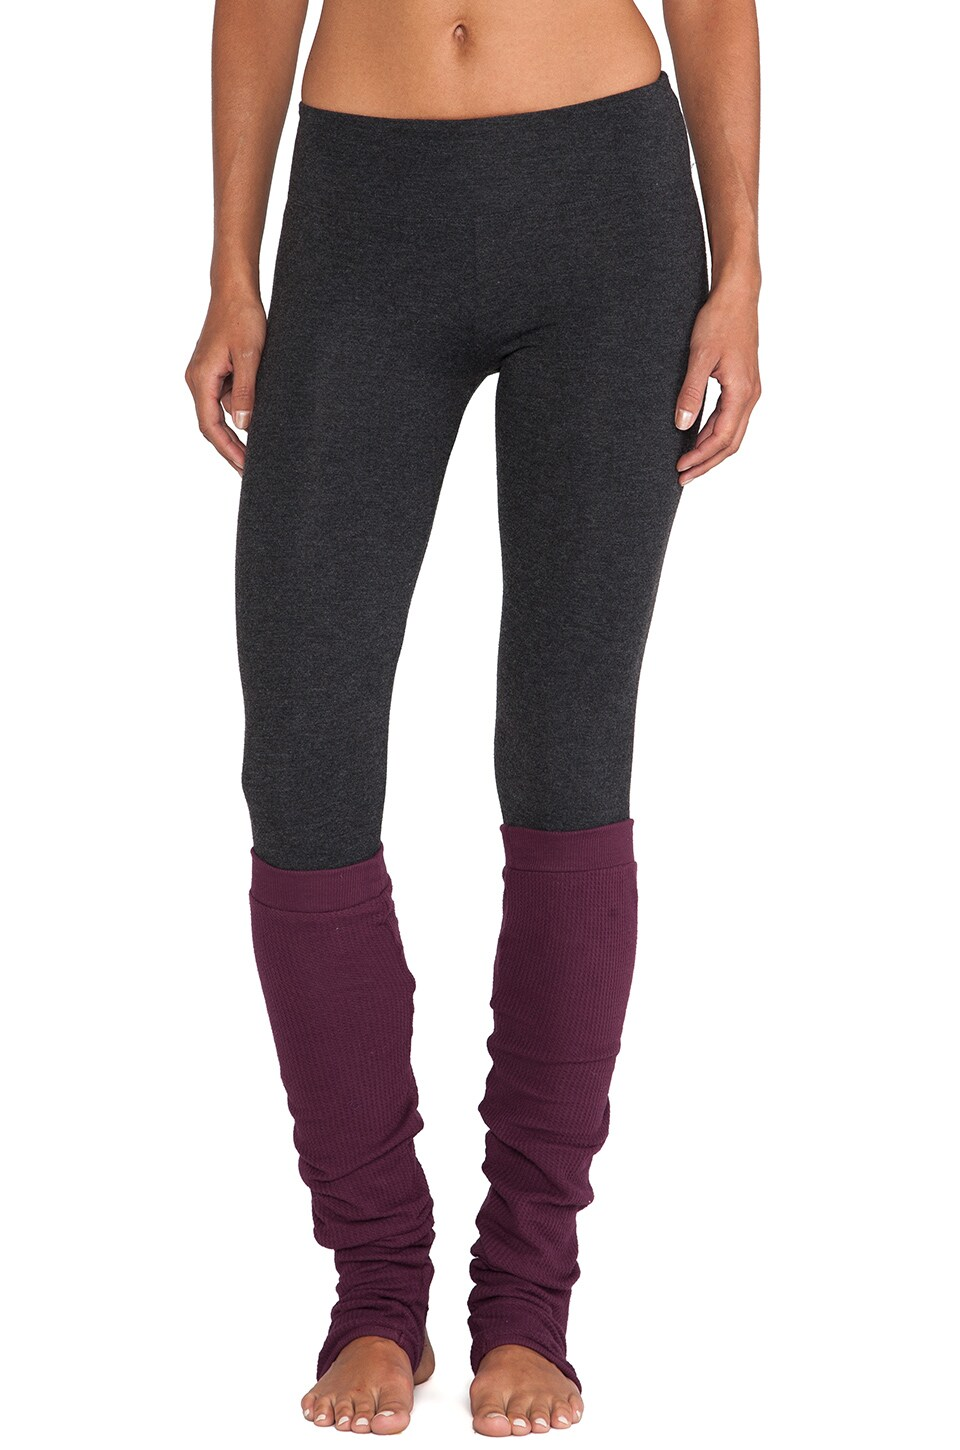 SOLOW So Low Legging with Warmers in Heather Charcoal & Rouge